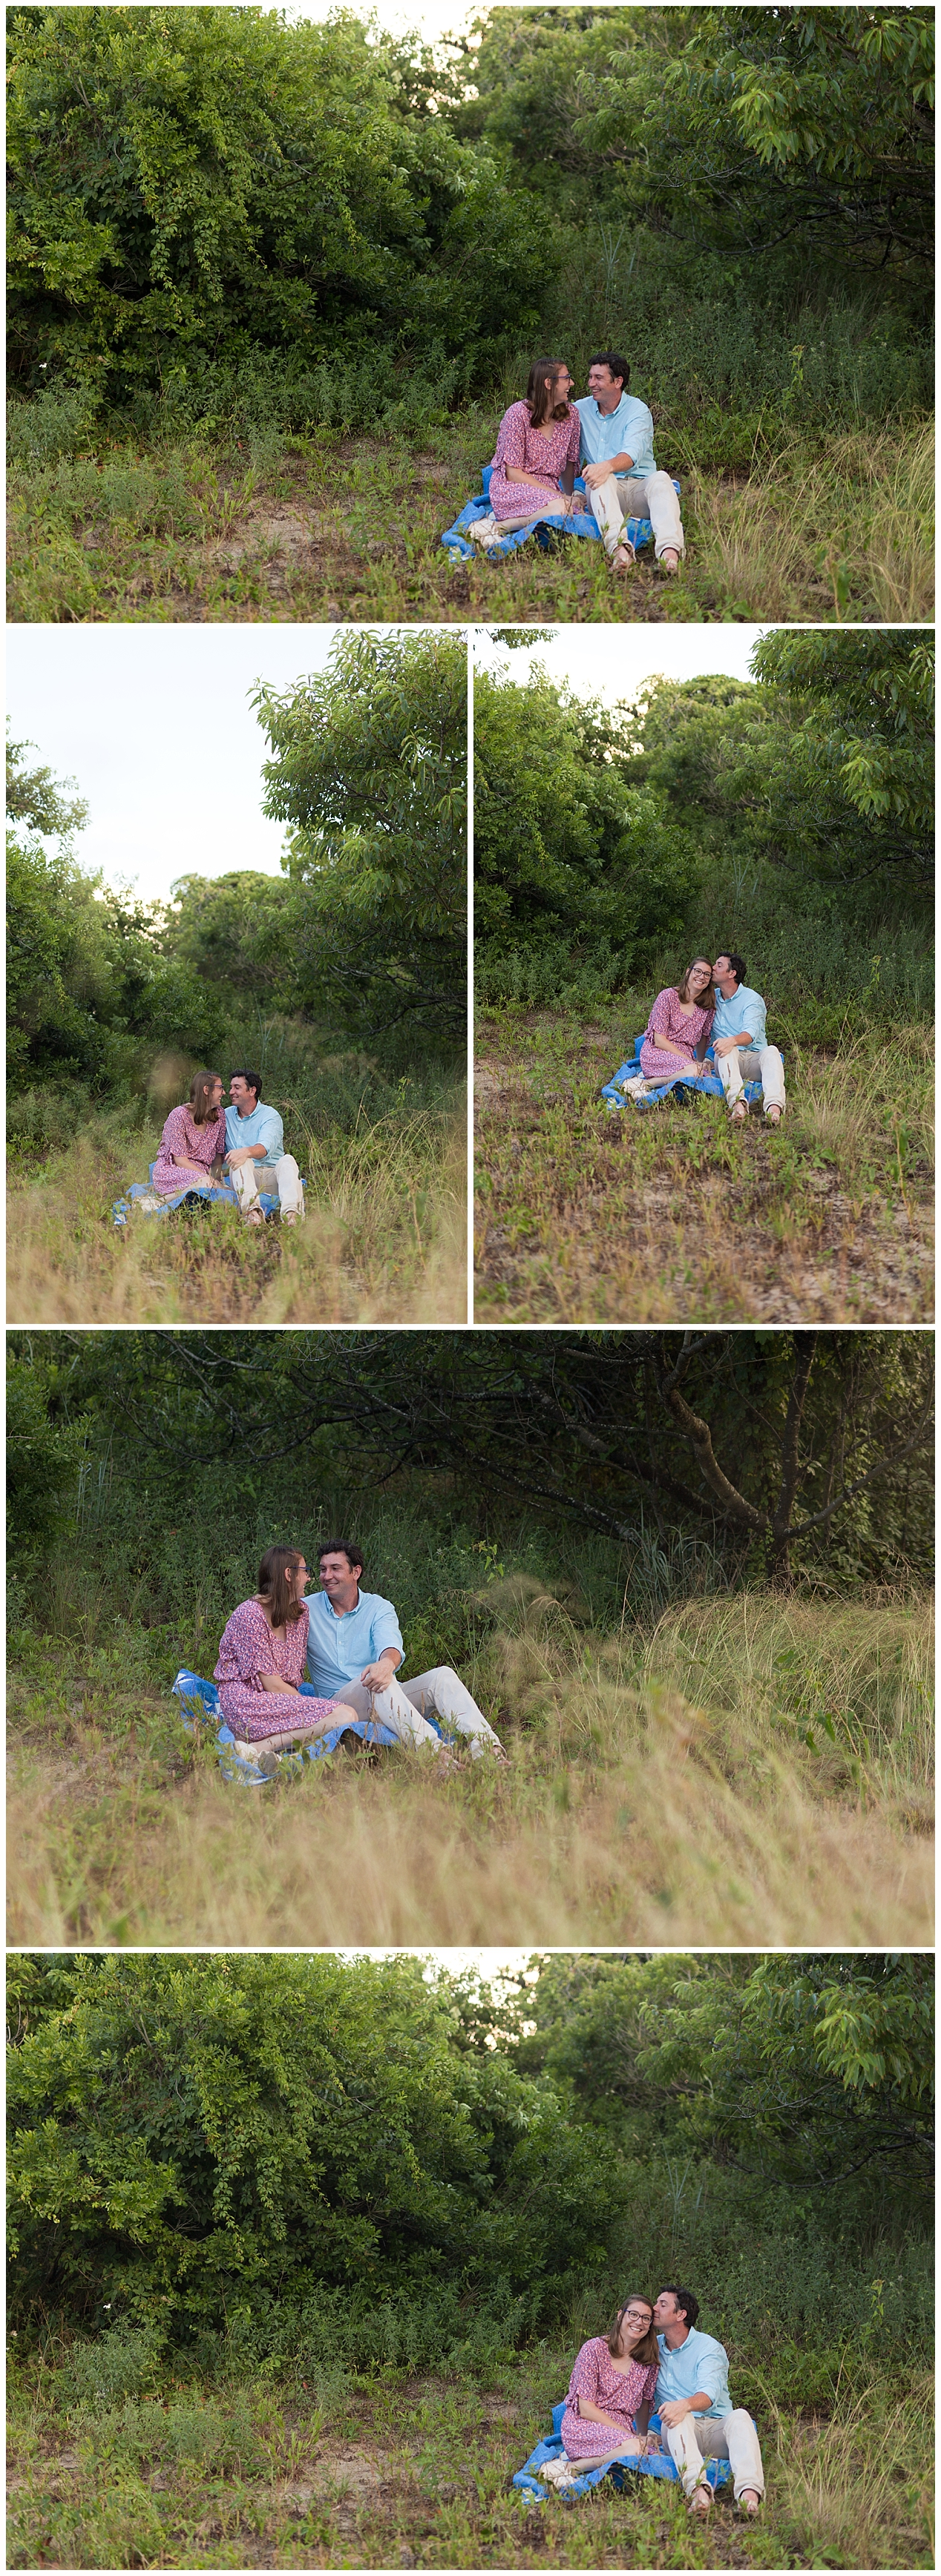 cozy engagement pictures with quilt, overgrown trees and weeds